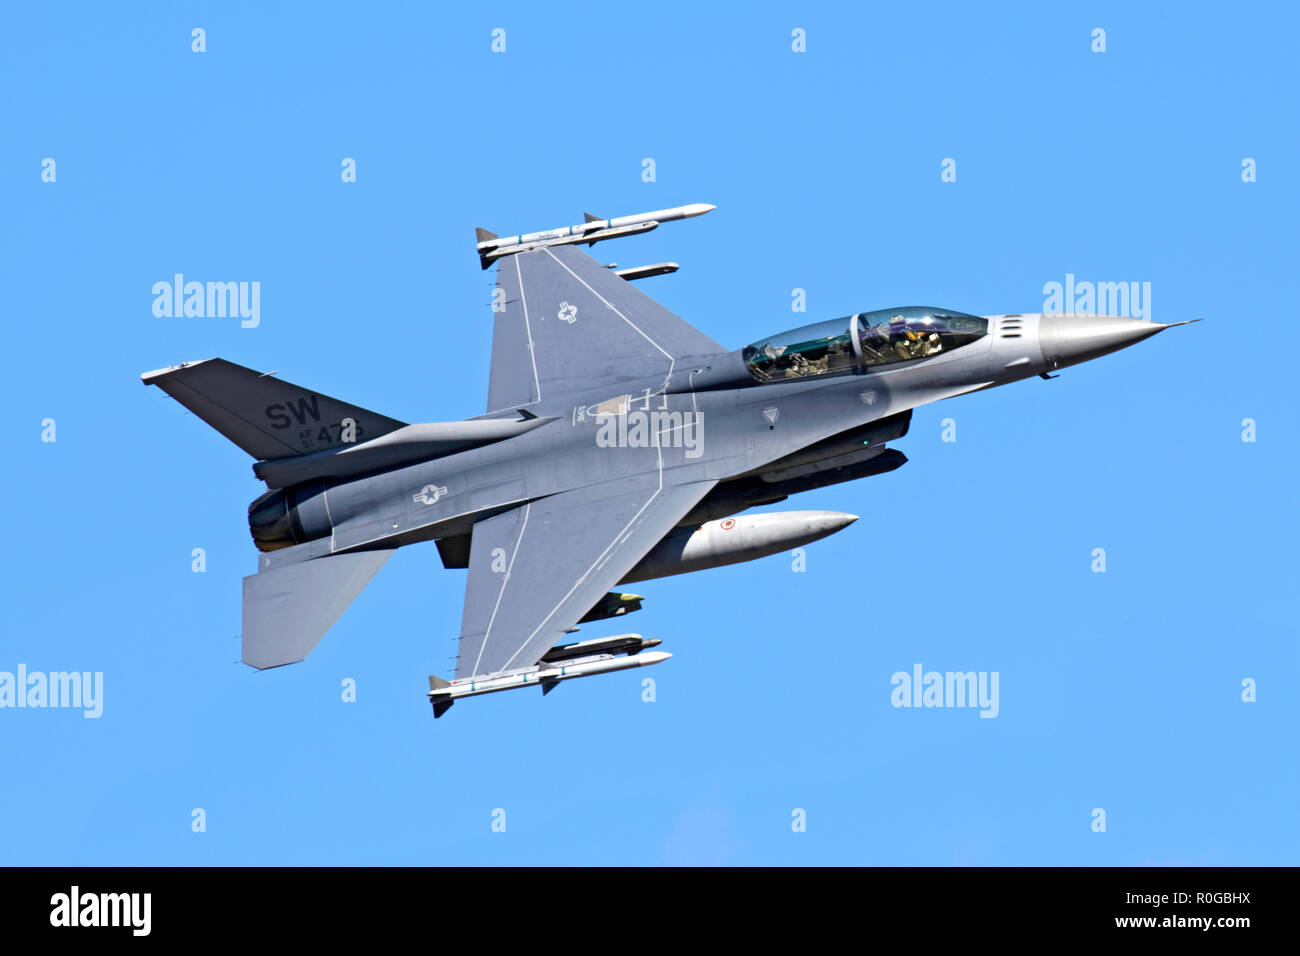 General Dynamics F-16D Fighting Falcon flown by US Air Force 20th FW based at Shaw AFB photographed in Death Valley during 2018 - Stock Image